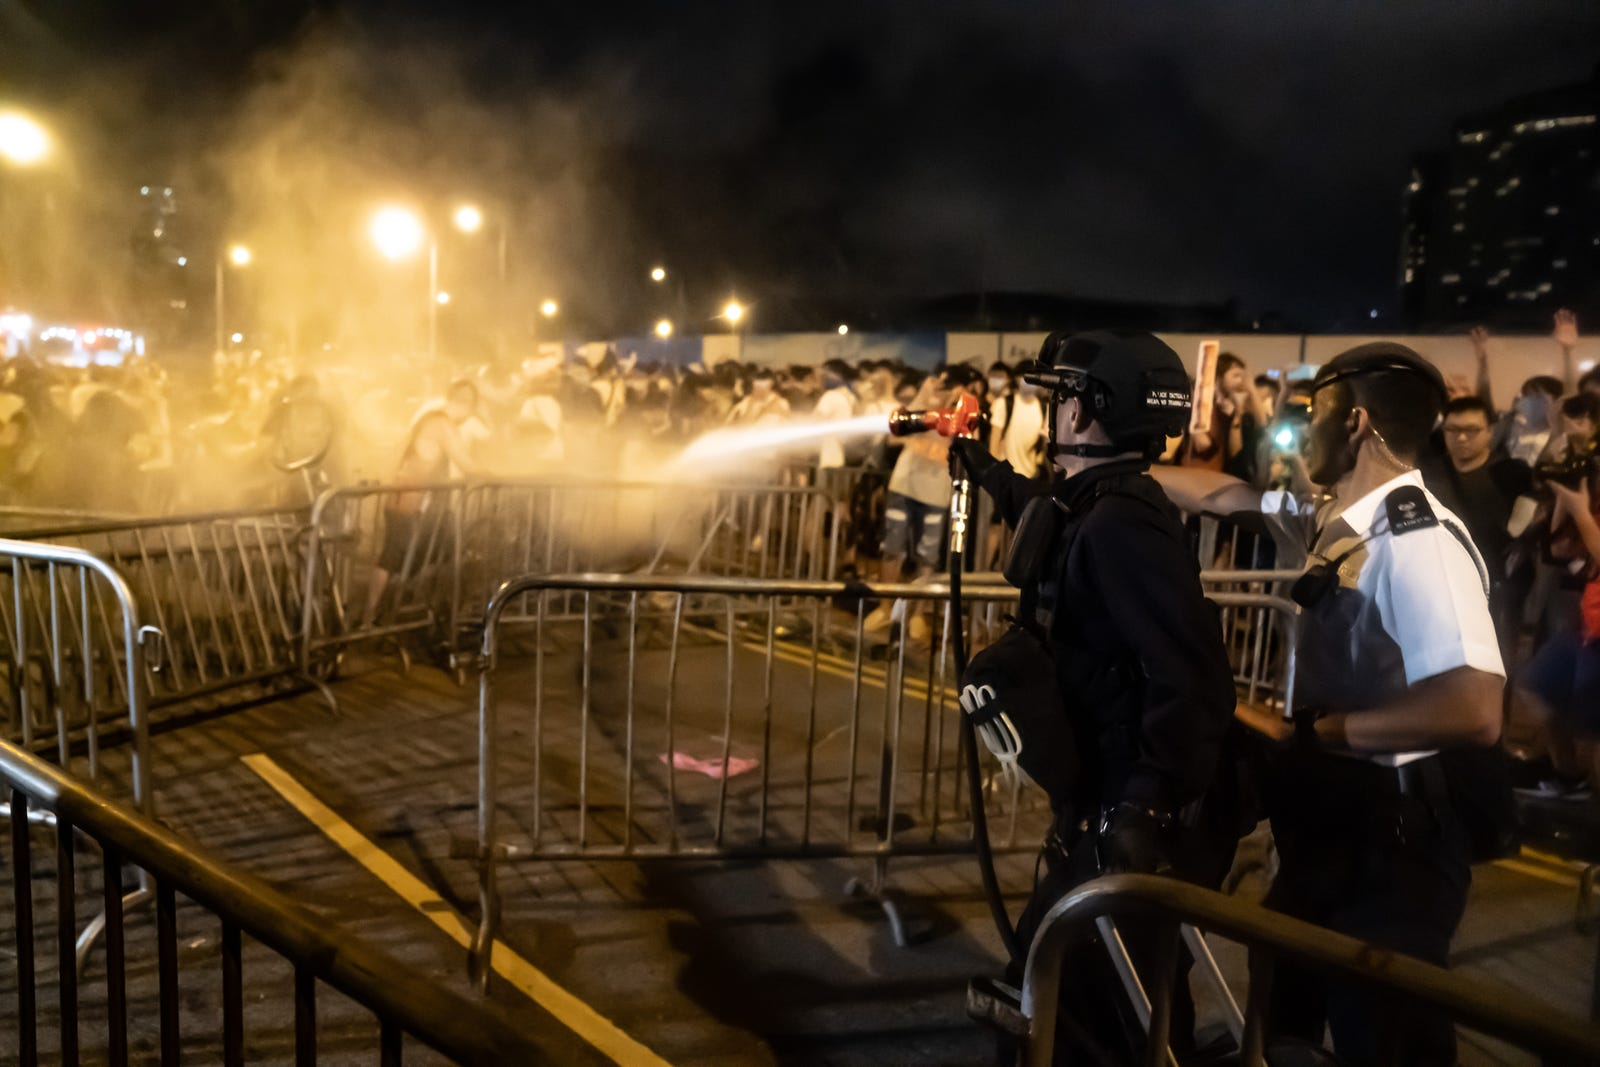 A police officer uses pepper spray during a clash at Legislative Council after a rally against the extradition law proposal at the Central Government Complex on June 10, 2019 in Hong Kong.